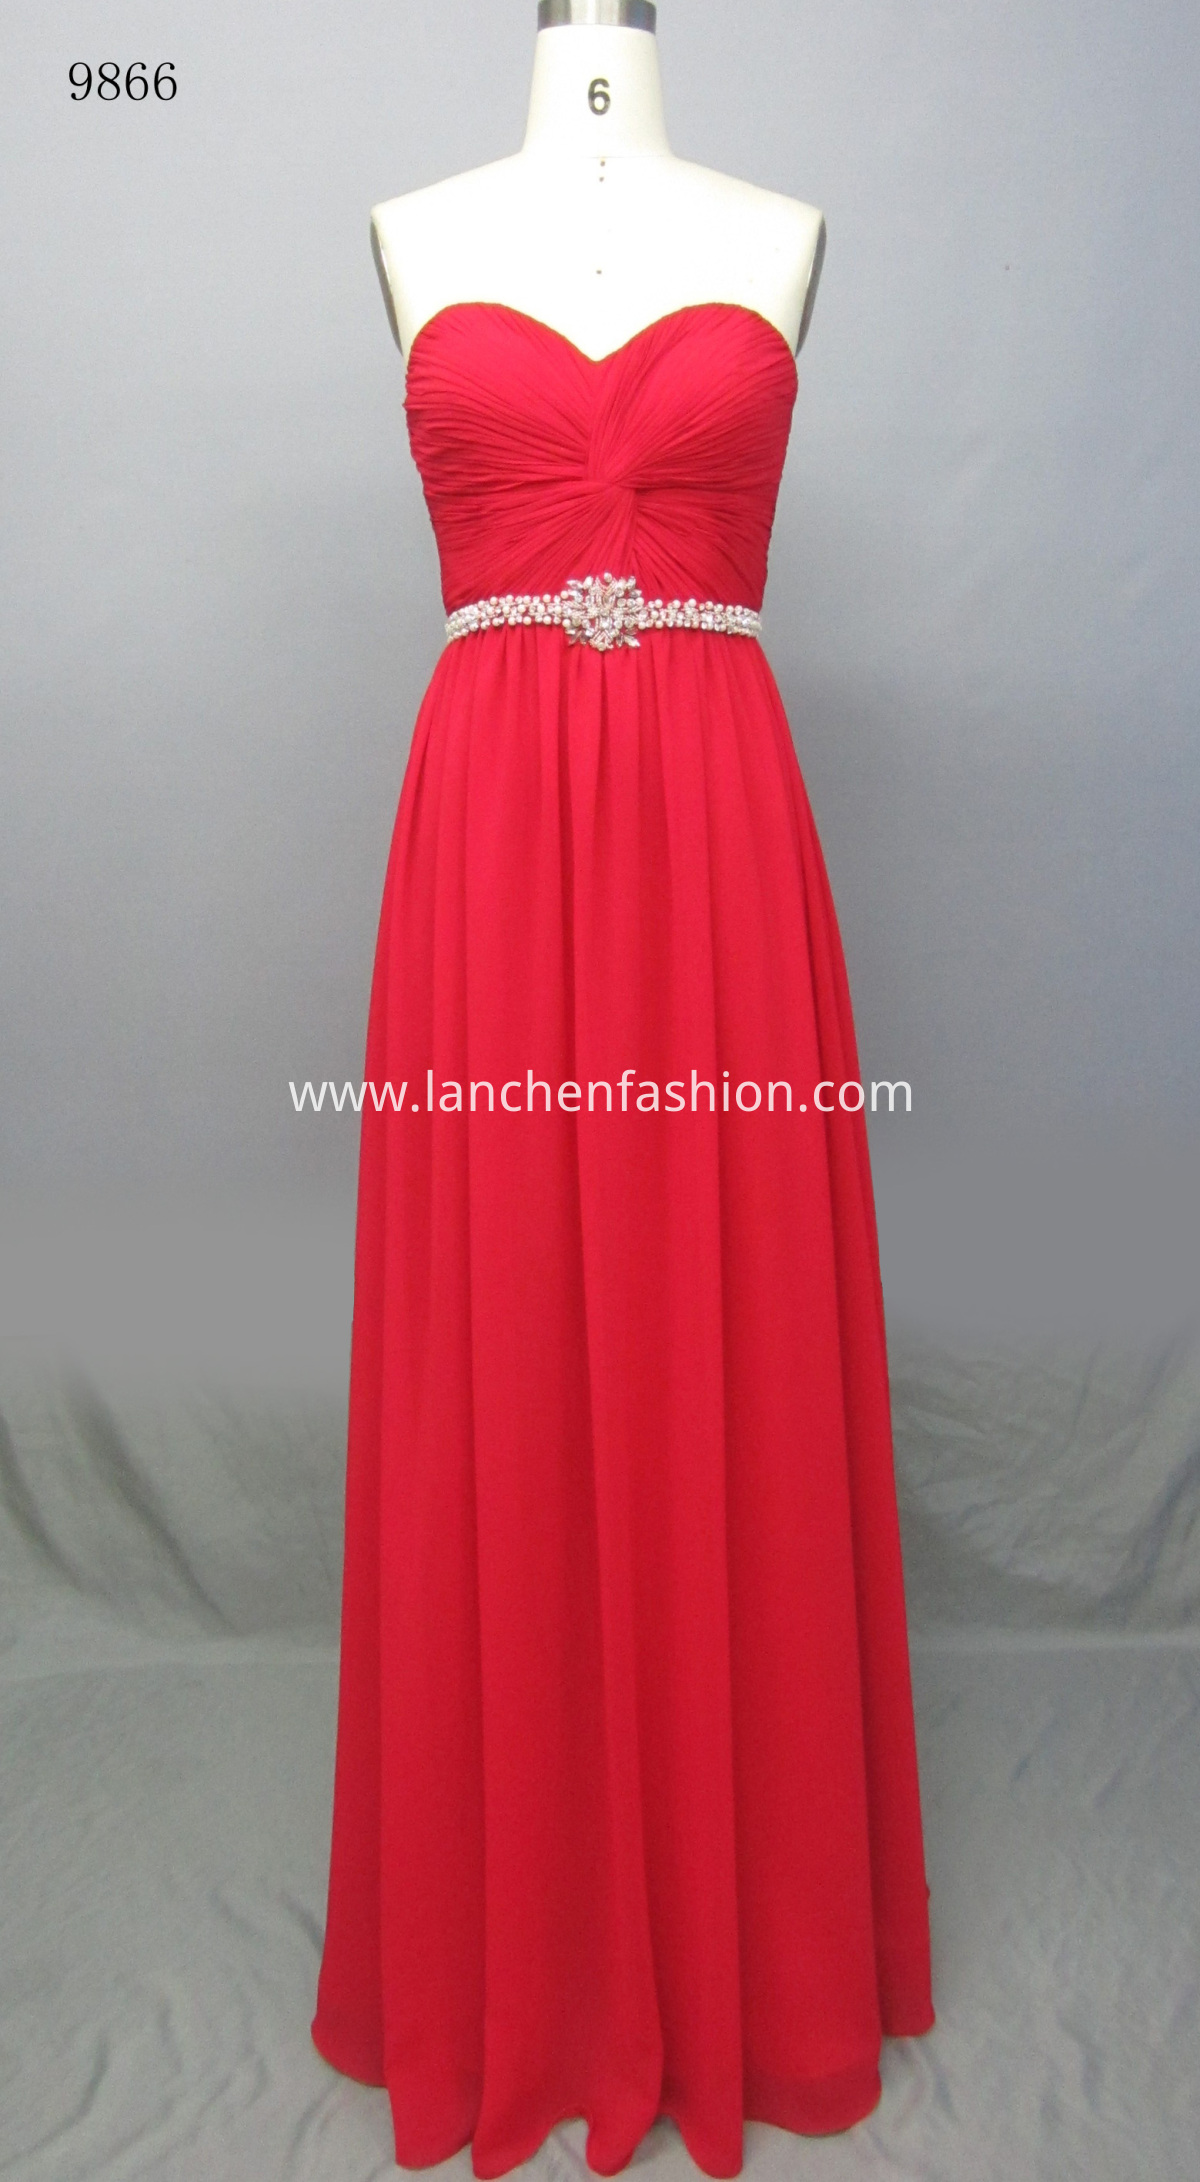 Elegant Vintage Long Dress